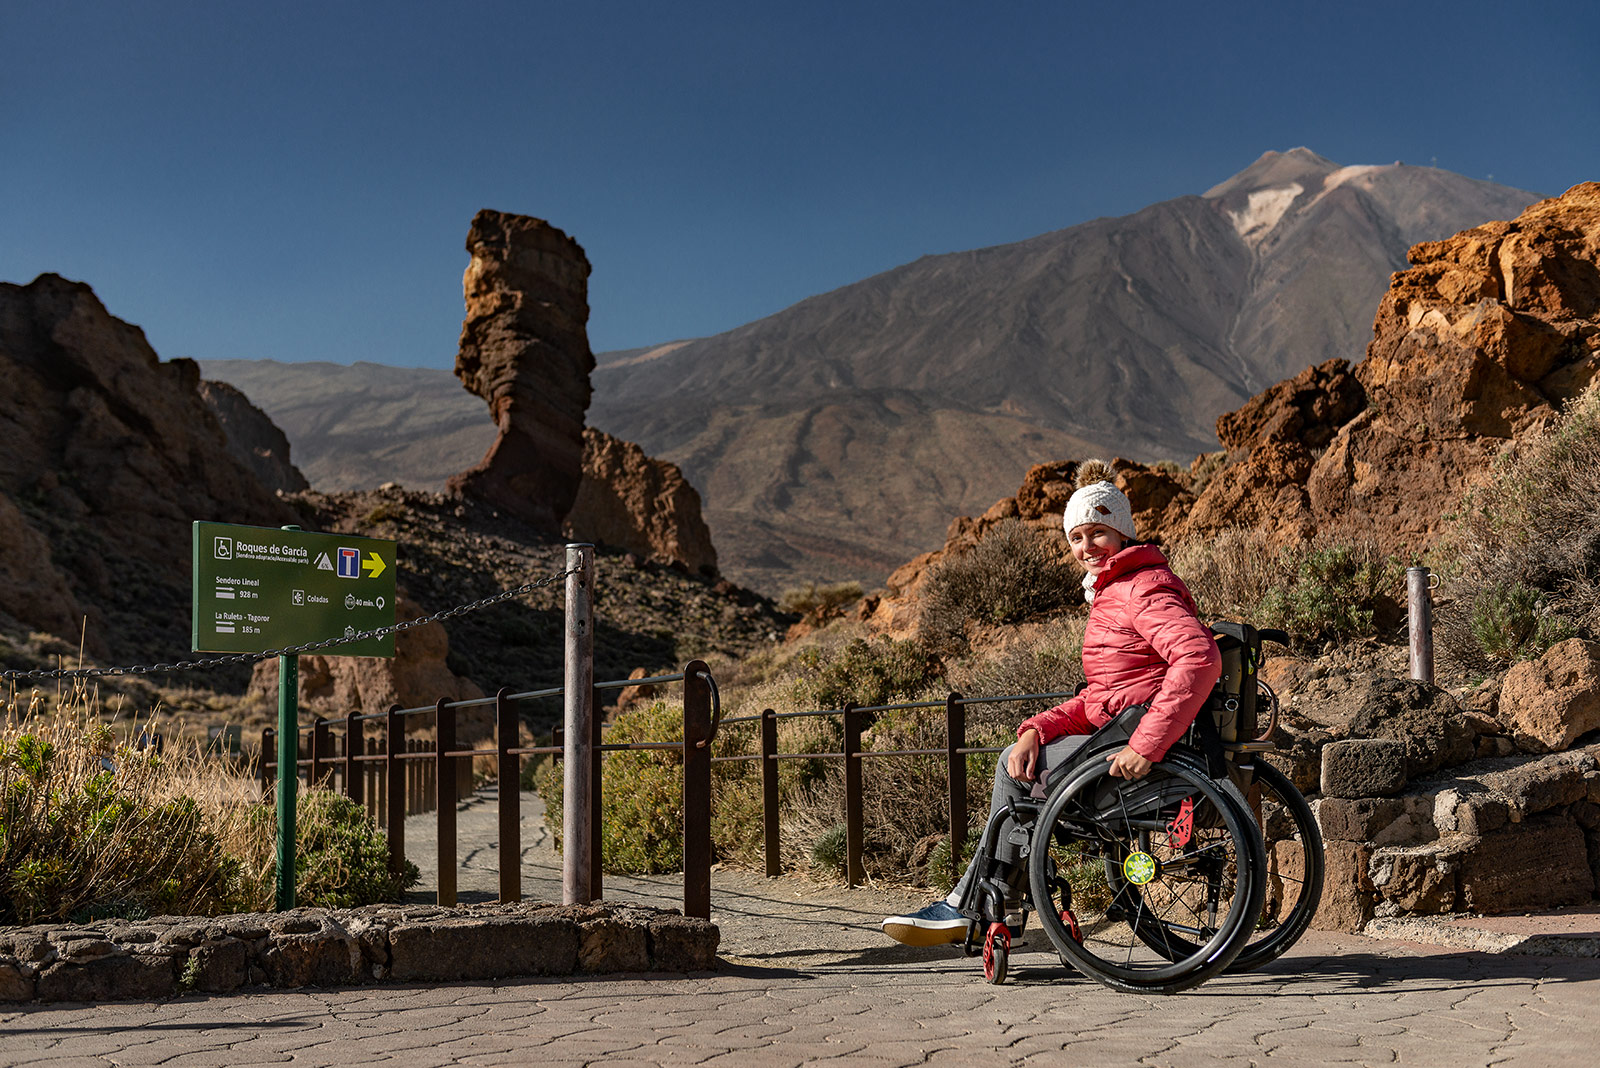 Tenerife-in-a-wheelchair-Accessibility-Guide-Little-Miss-Turtle-Disability-Rare-Disease-Accessible-Travel-Blog-Blogger-Roques-de-Garcia-Tenerife-Article-Cover